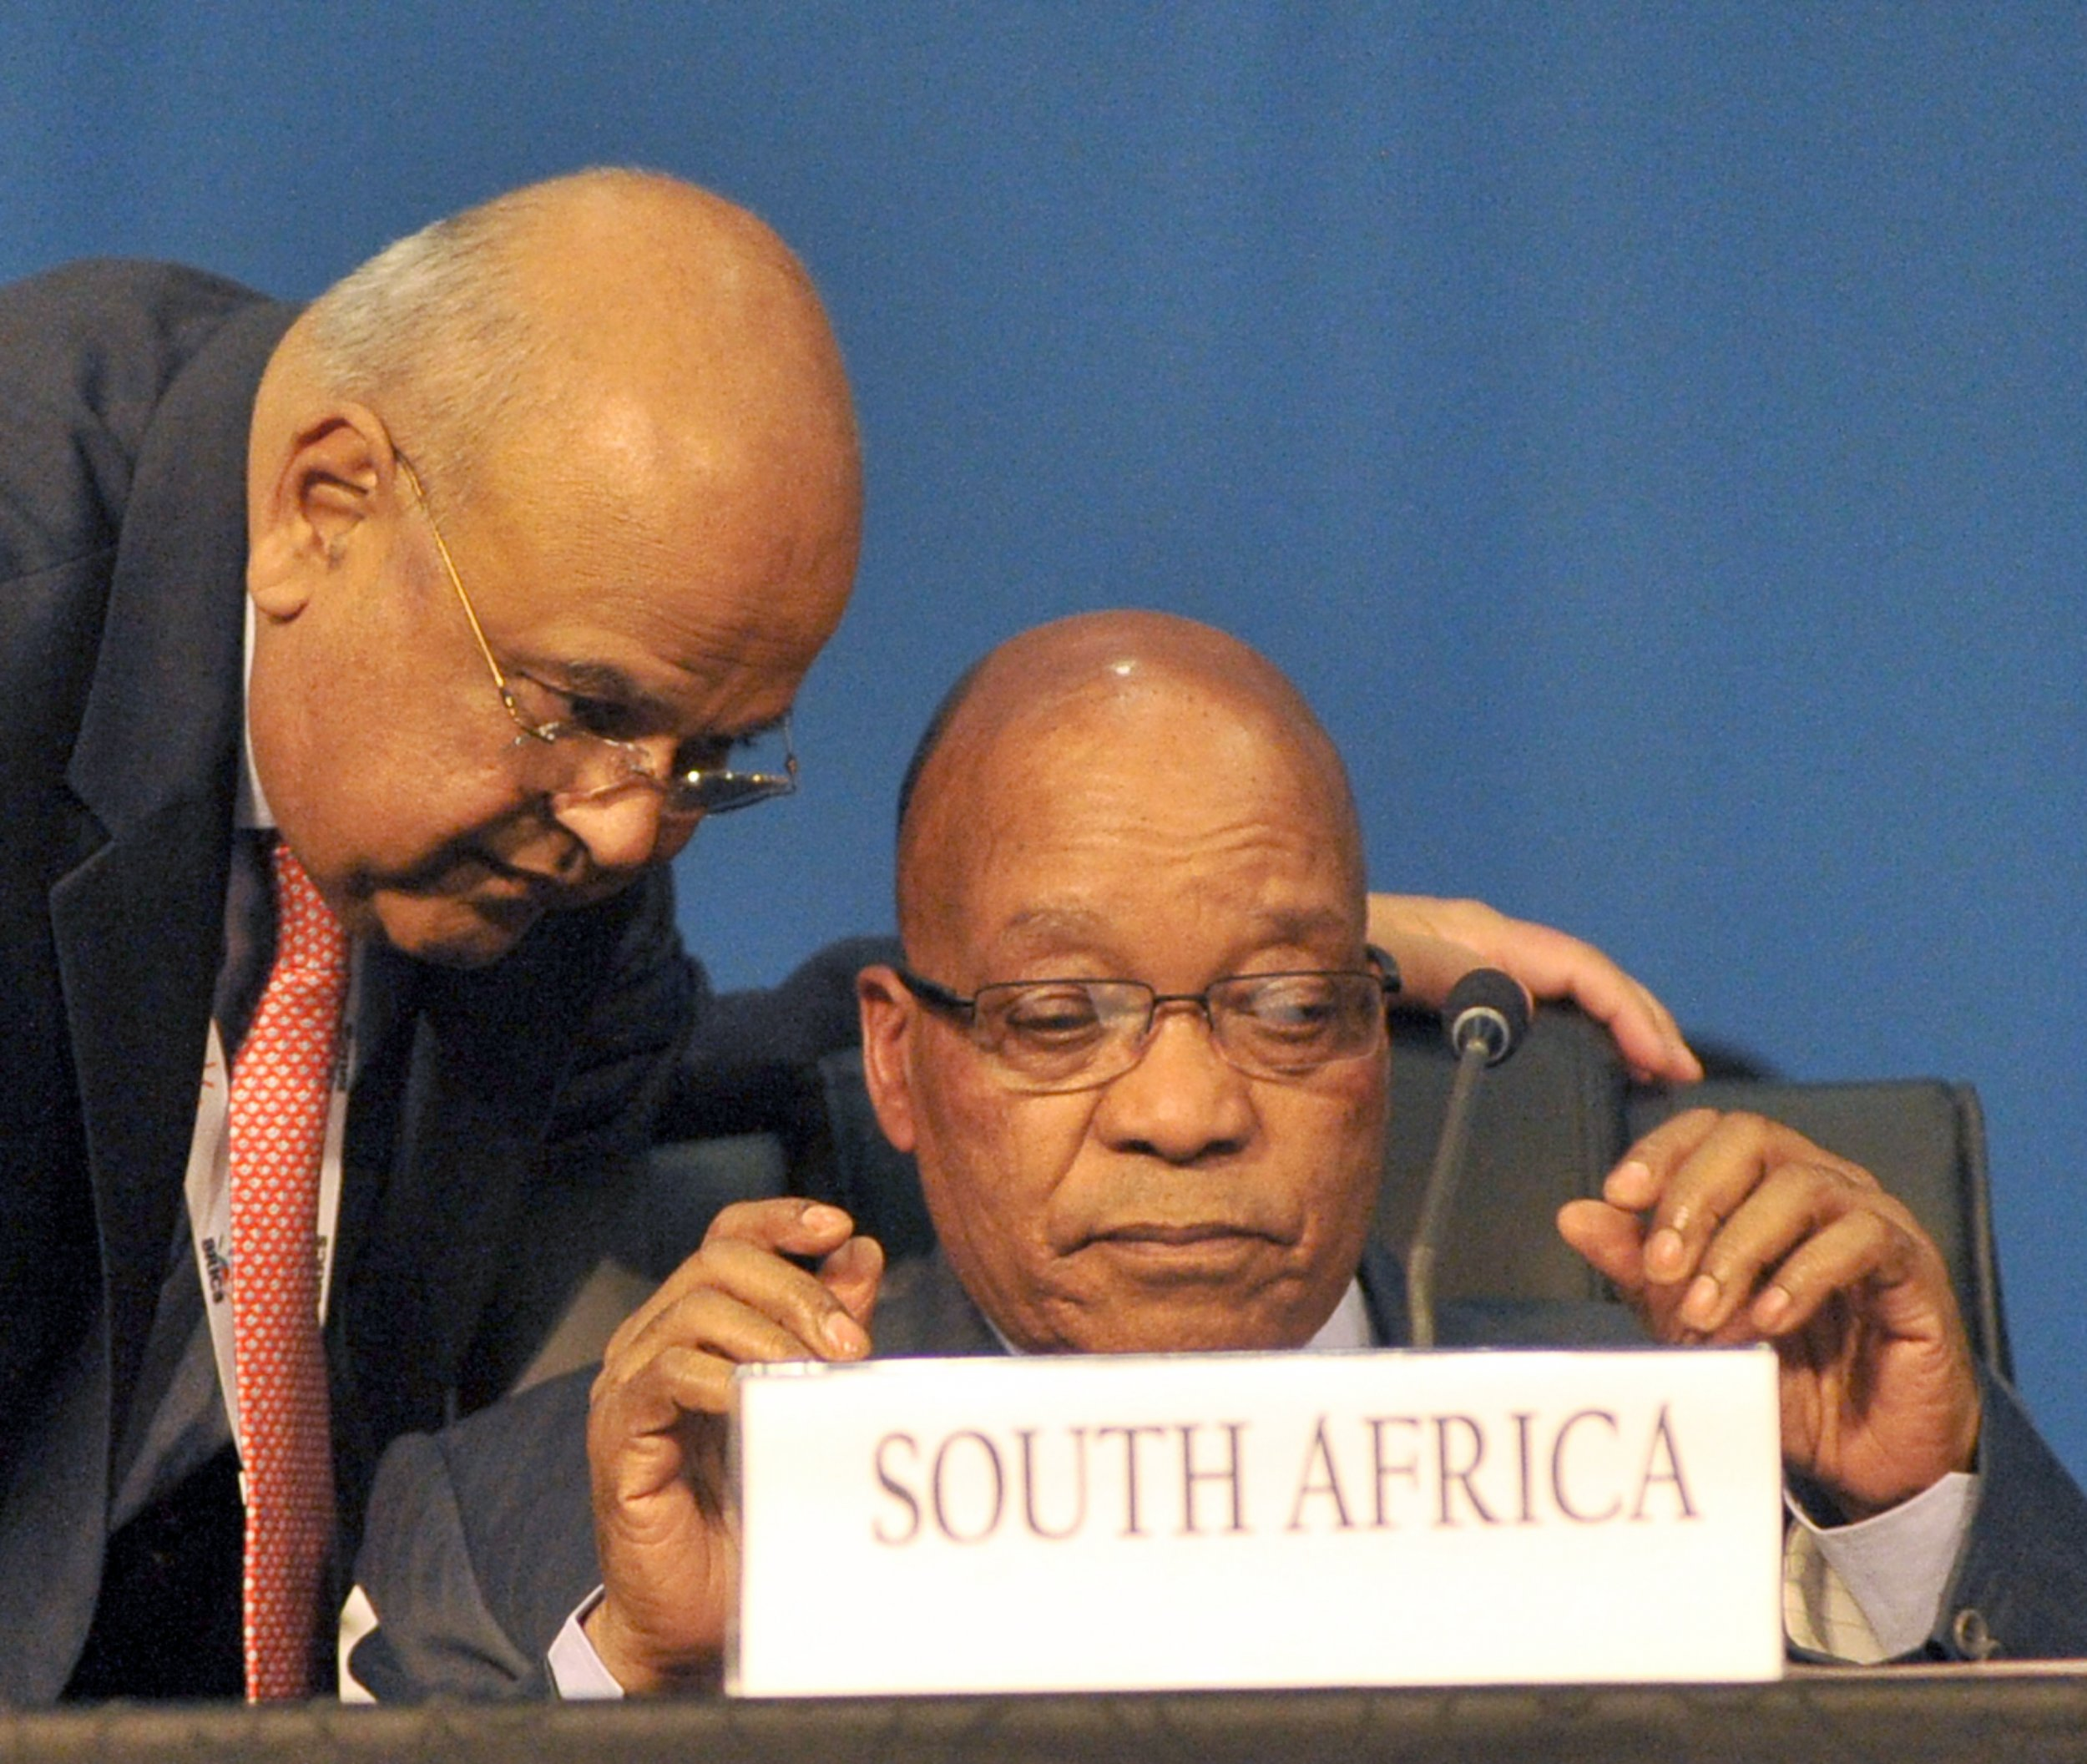 Jacob Zuma and Pravin Gordhan speak at a BRICS summit in Durban.